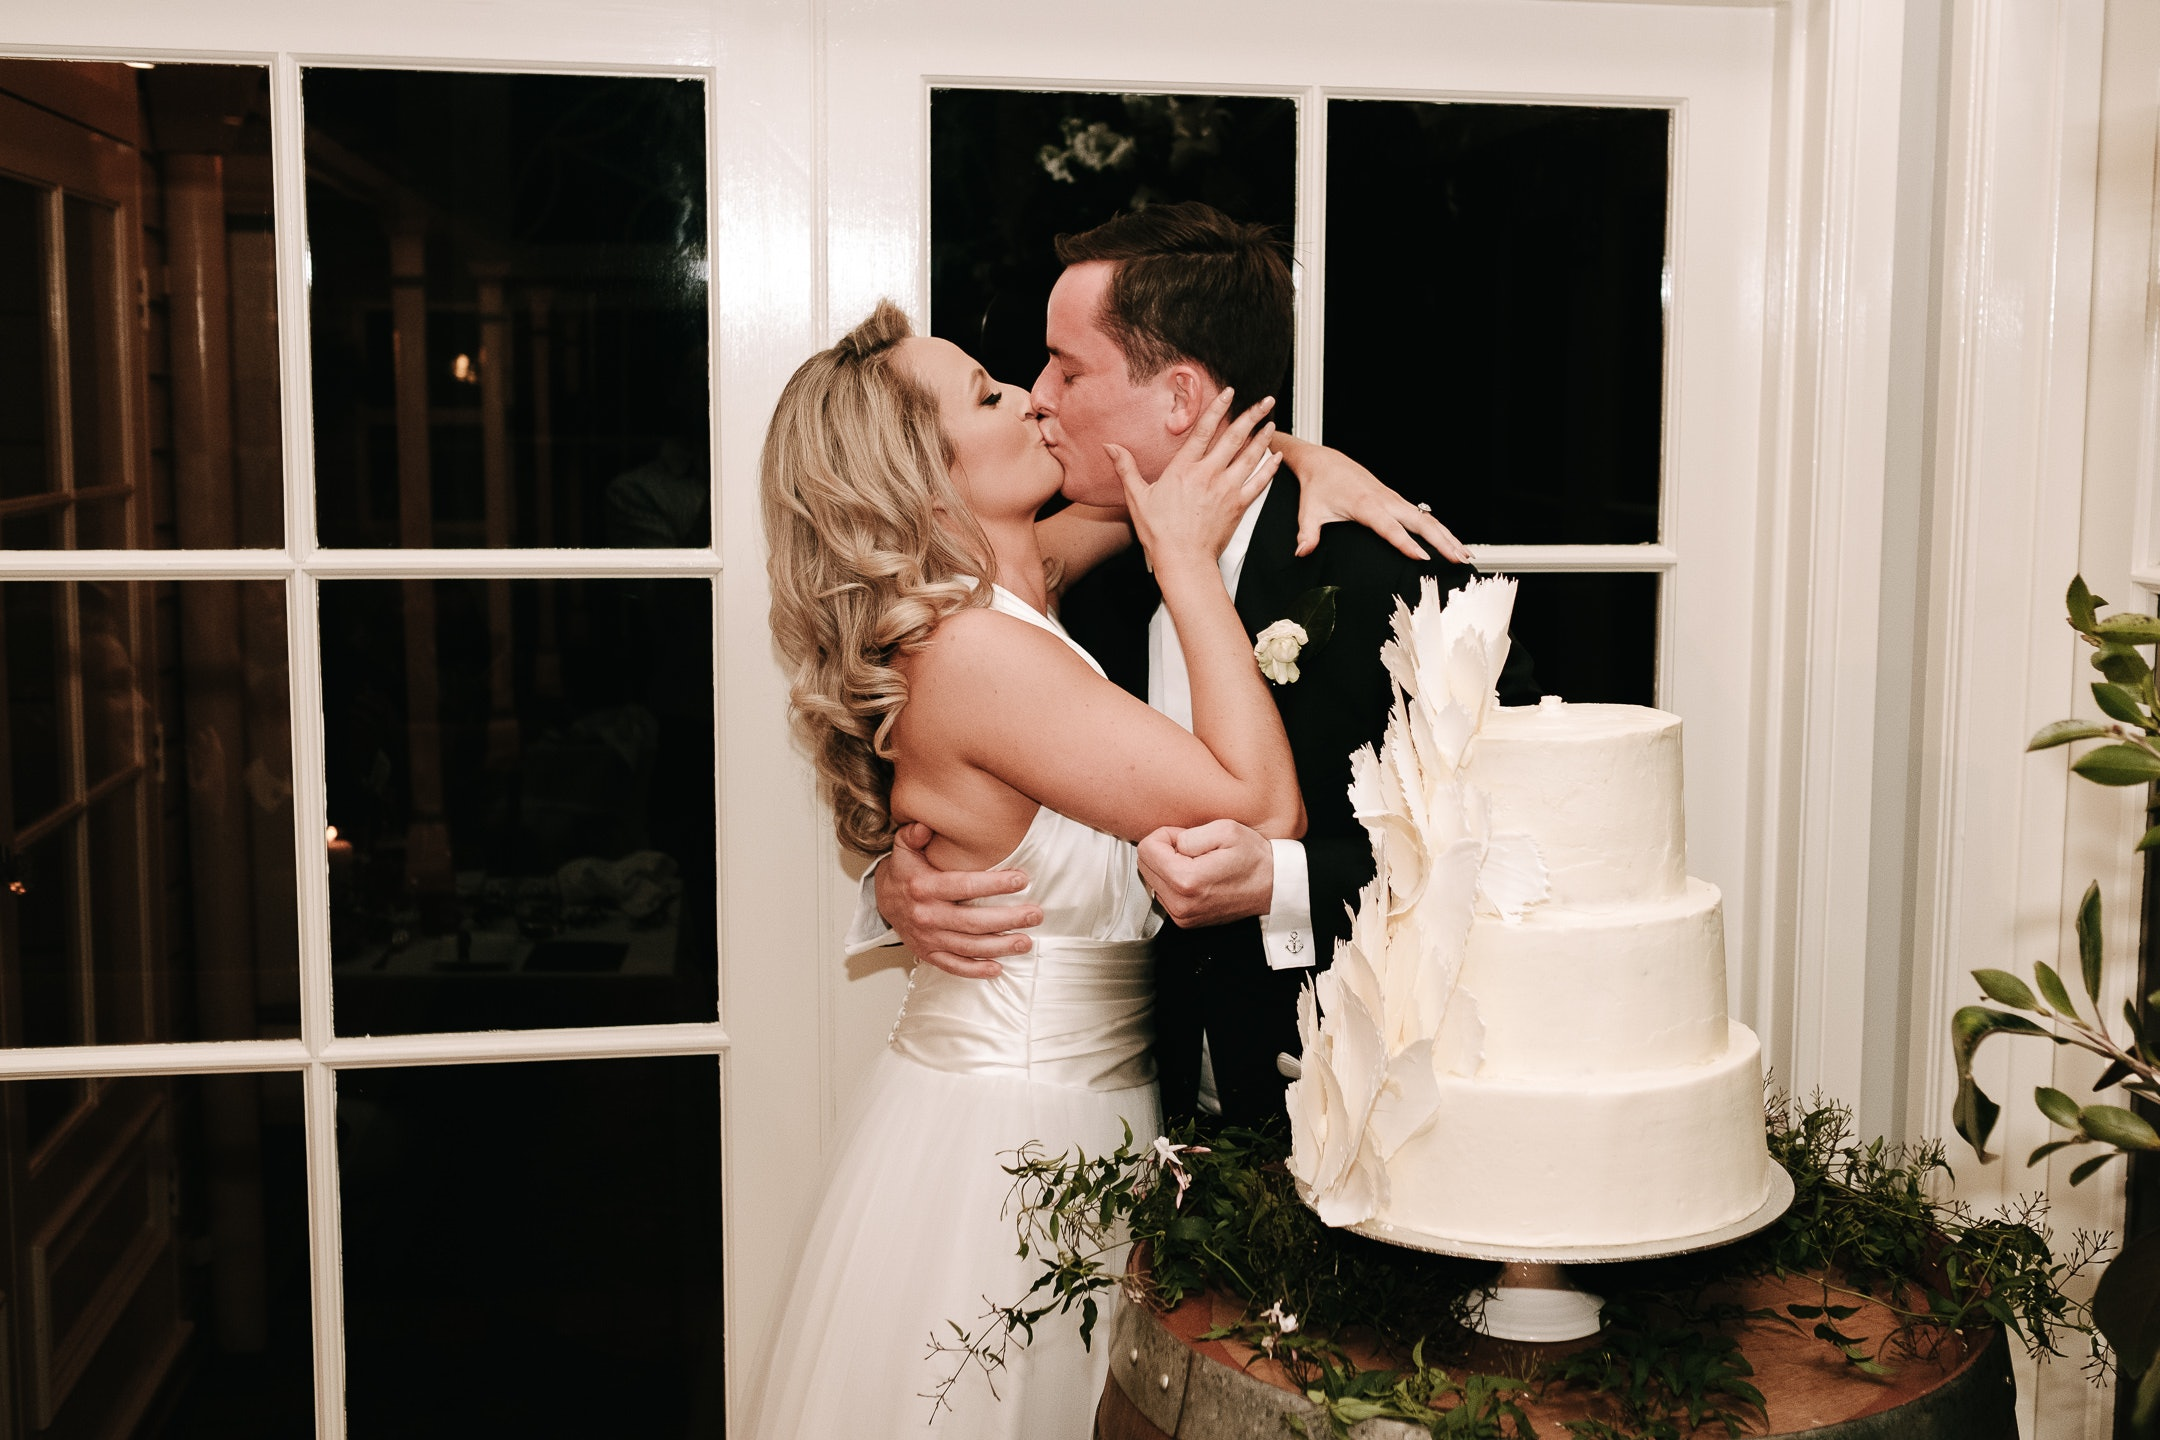 Bride and groom kissing next to wedding cake